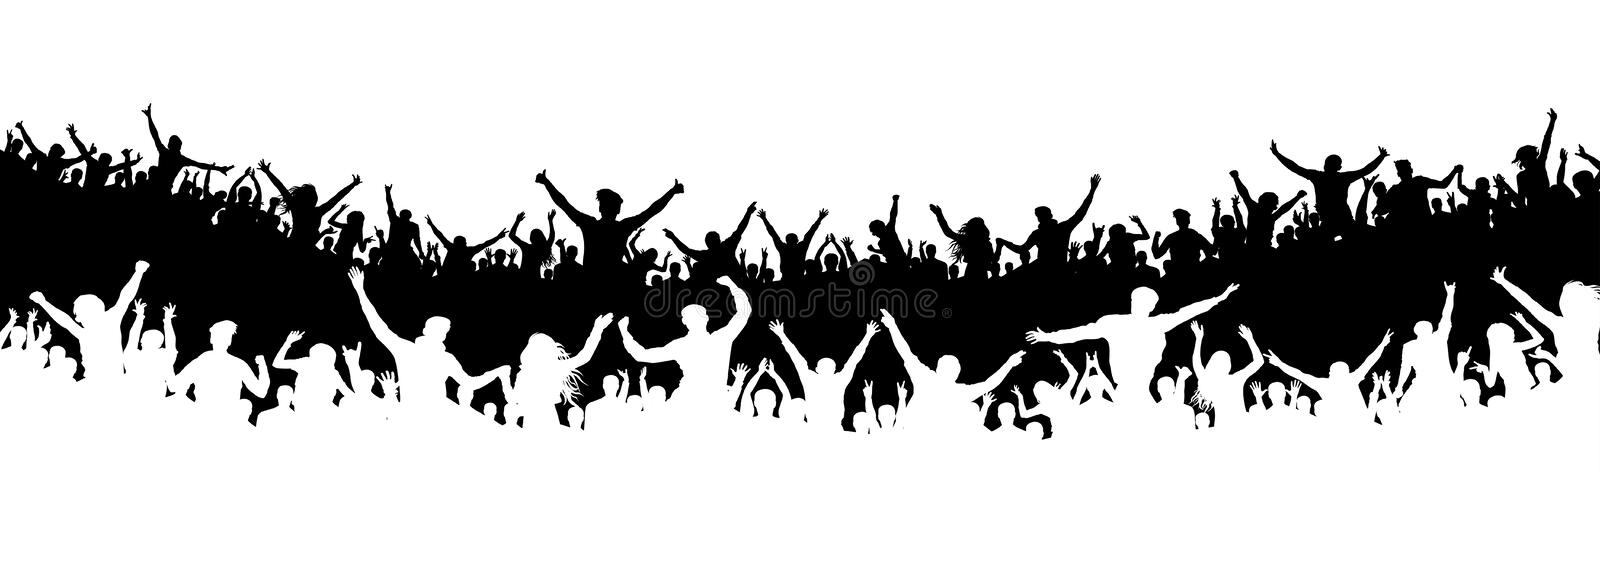 Crowd of people in the stadium. Crowd of sports fans. Silhouette vector. Banner, poster. Crowd of people in the stadium. Crowd of sports fans. Silhouette vector vector illustration